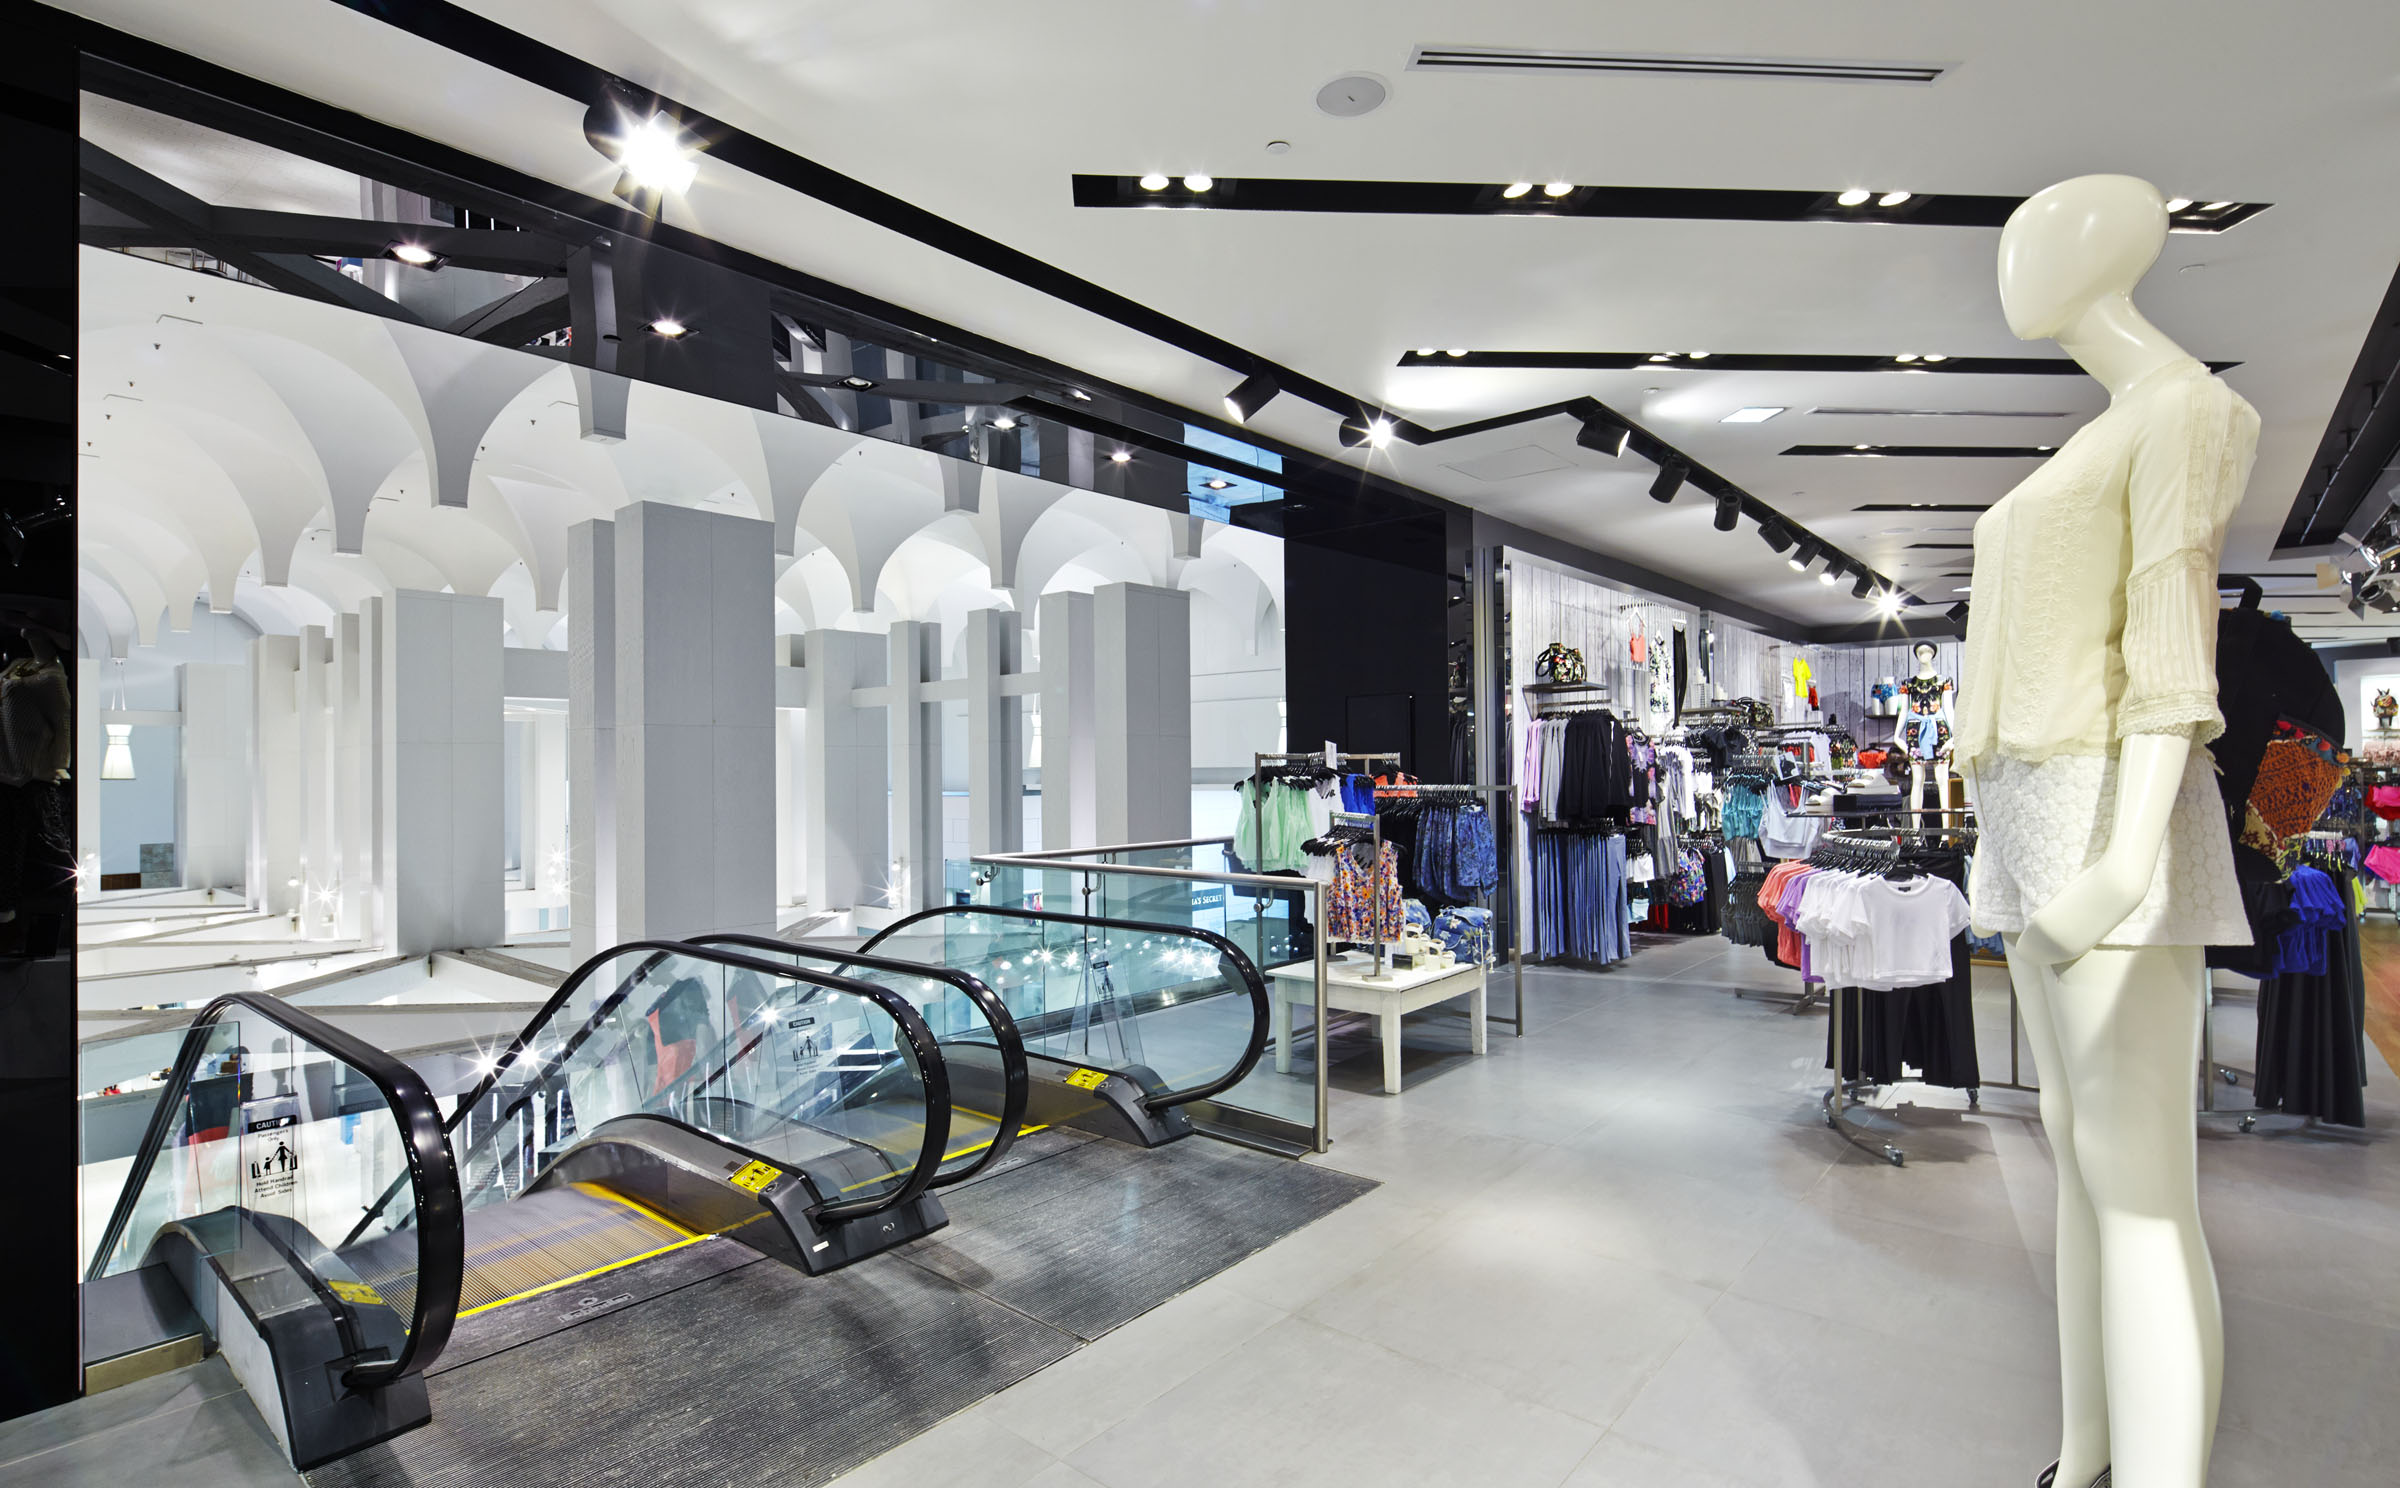 The Bay at Yorkdale